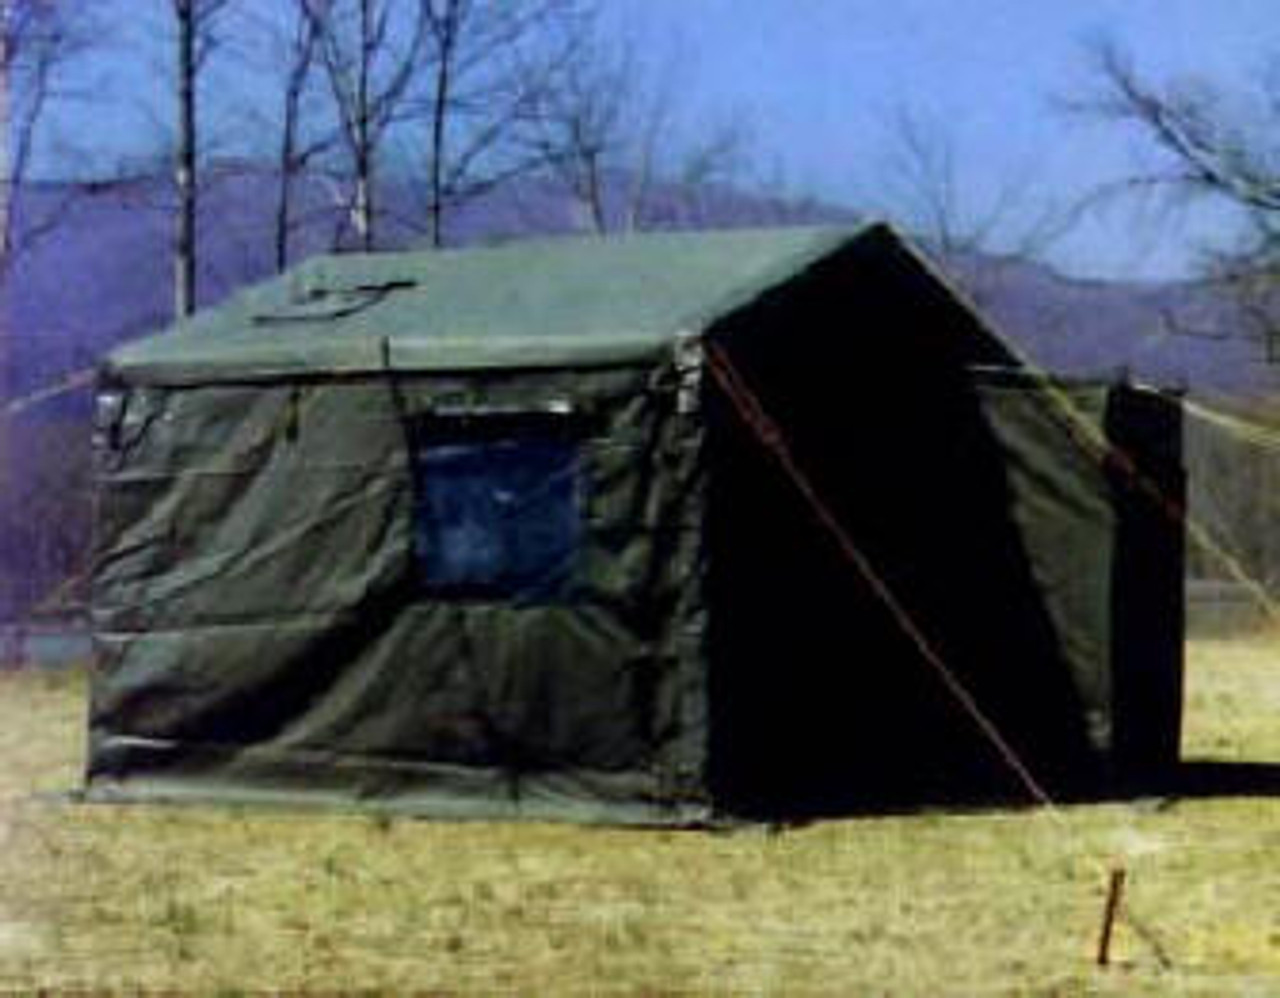 Modular Command Post System Tent (MCPS)